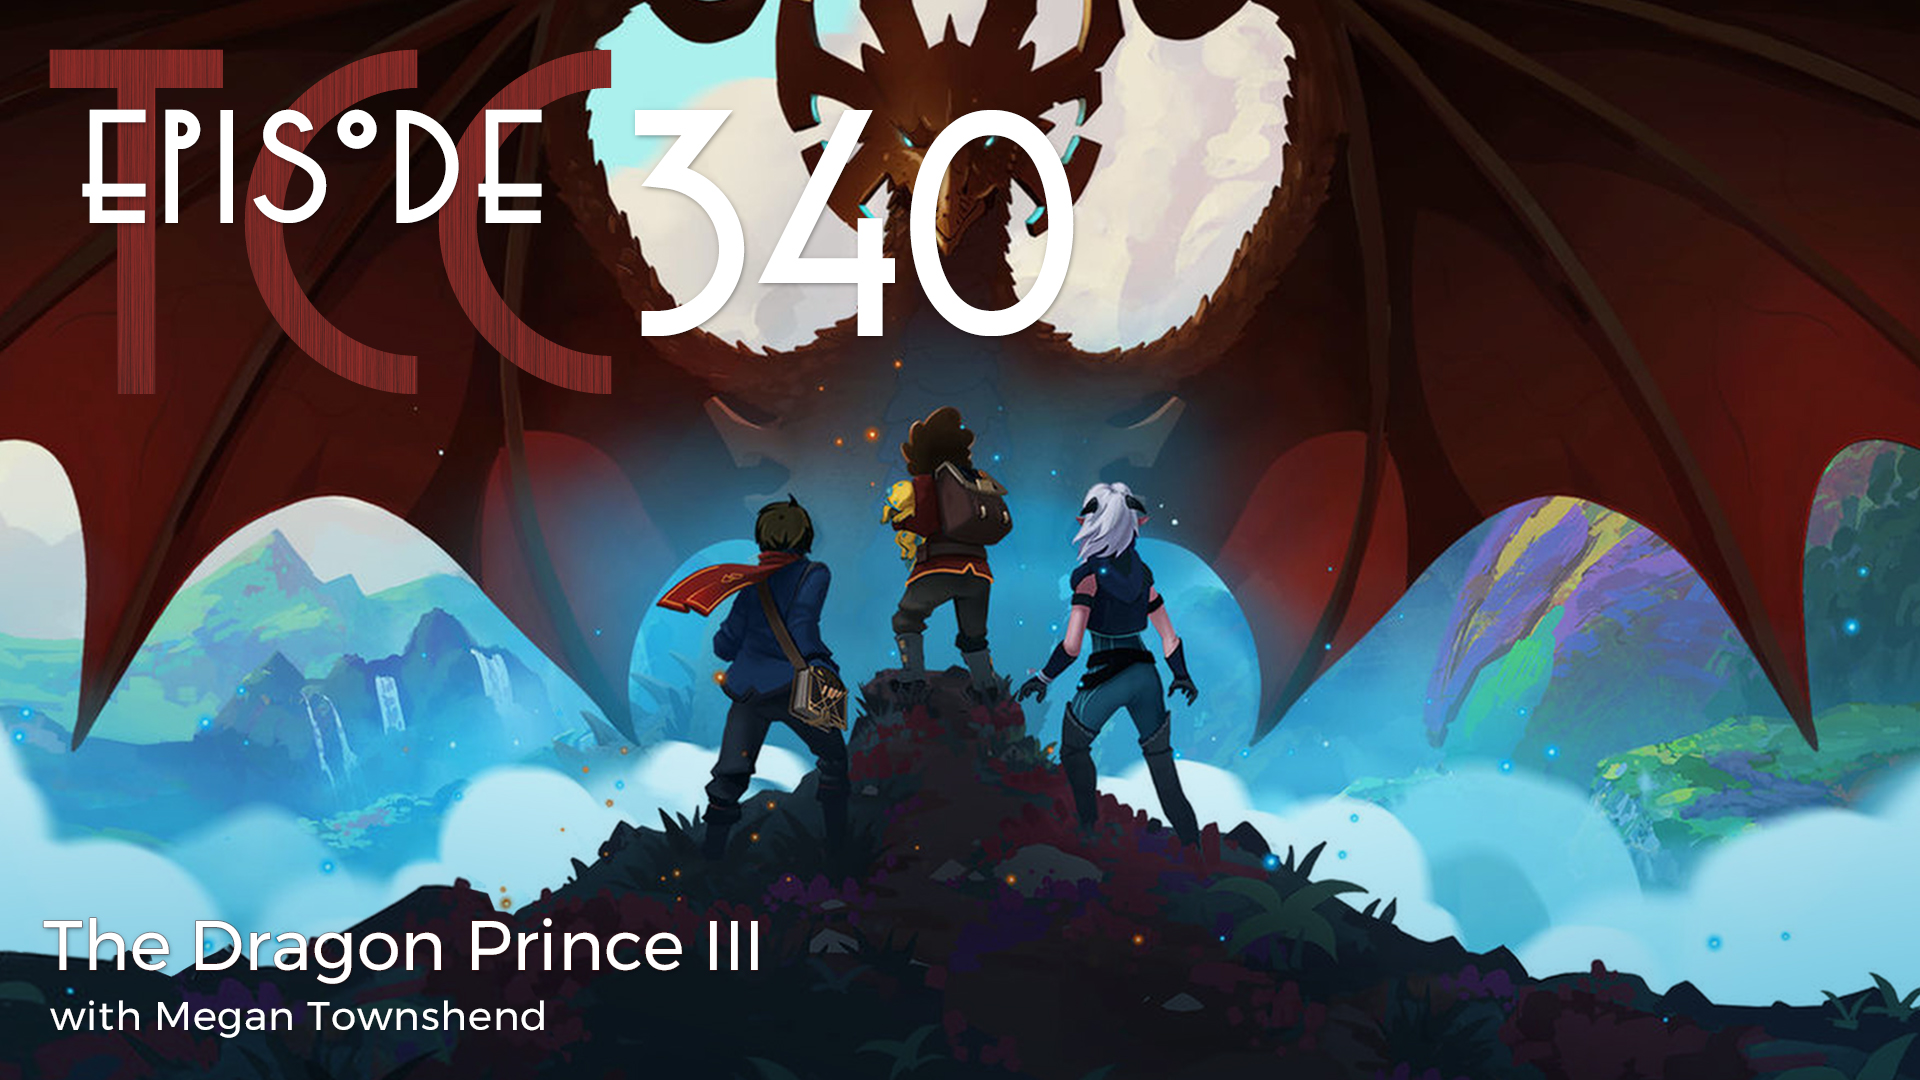 The Citadel Cafe 340: The Dragon Prince III